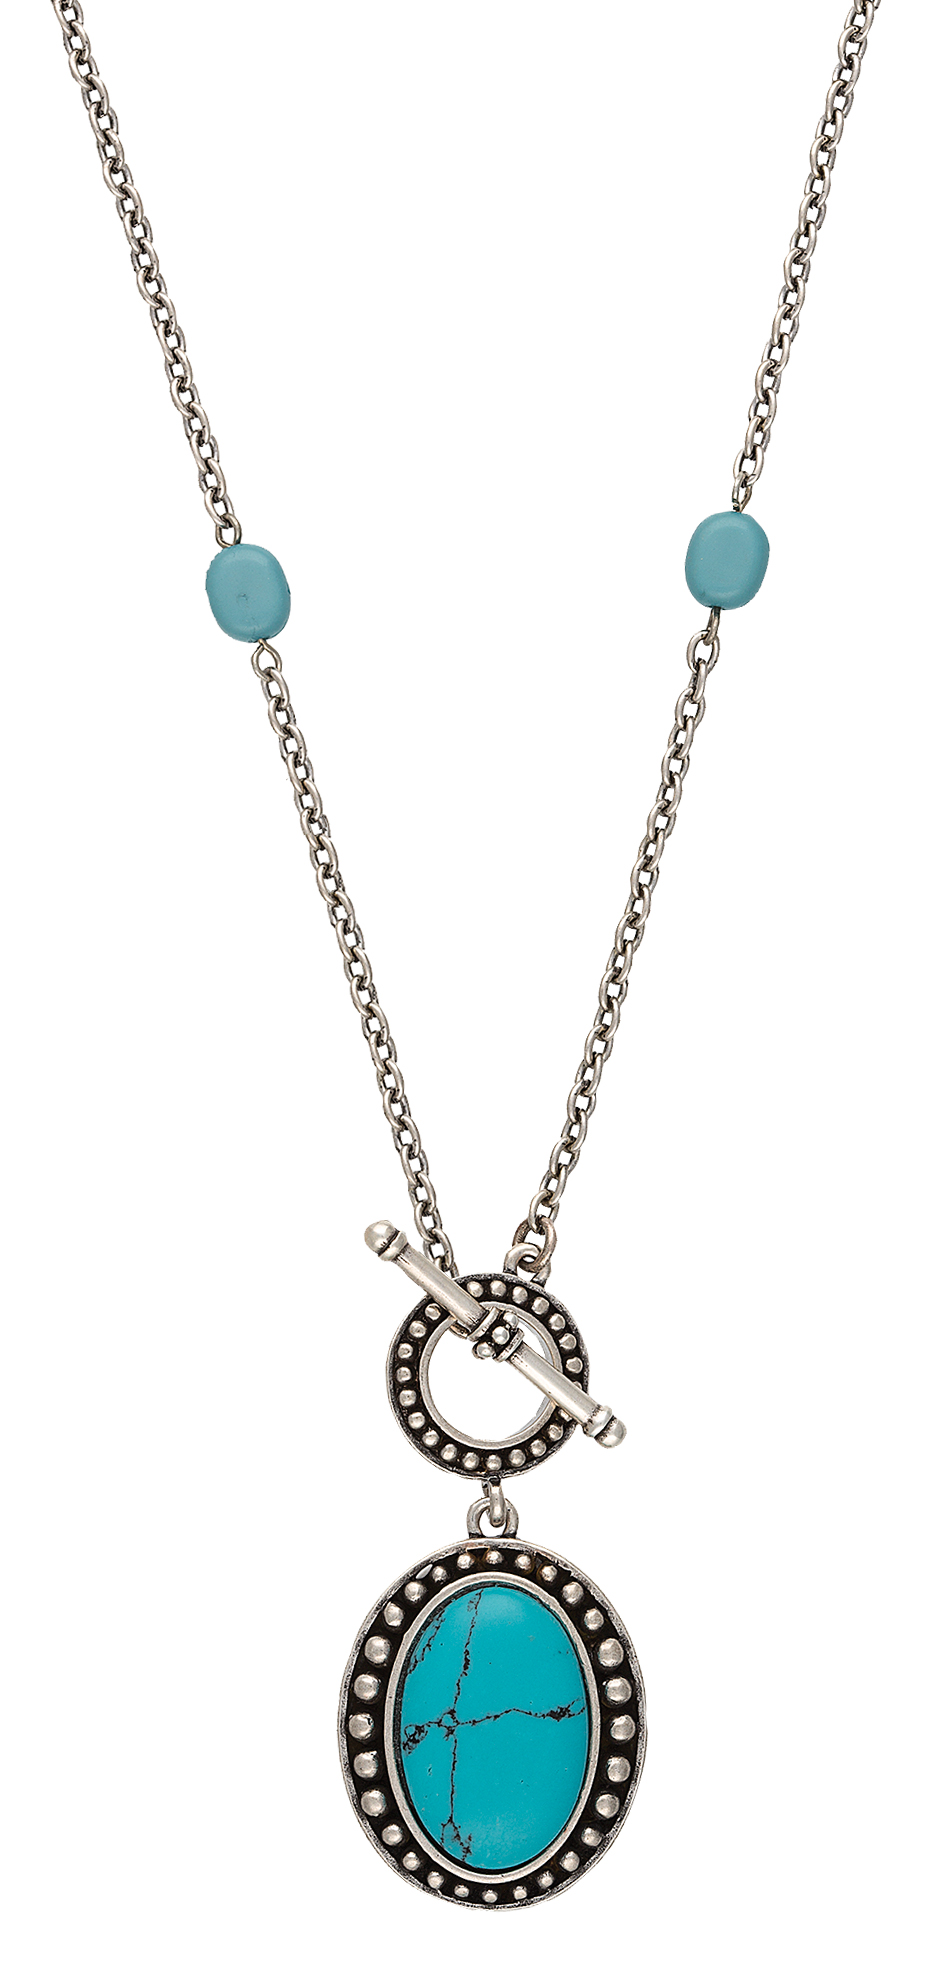 Rock 47 Rocks and Roll Stone Lariat Necklace